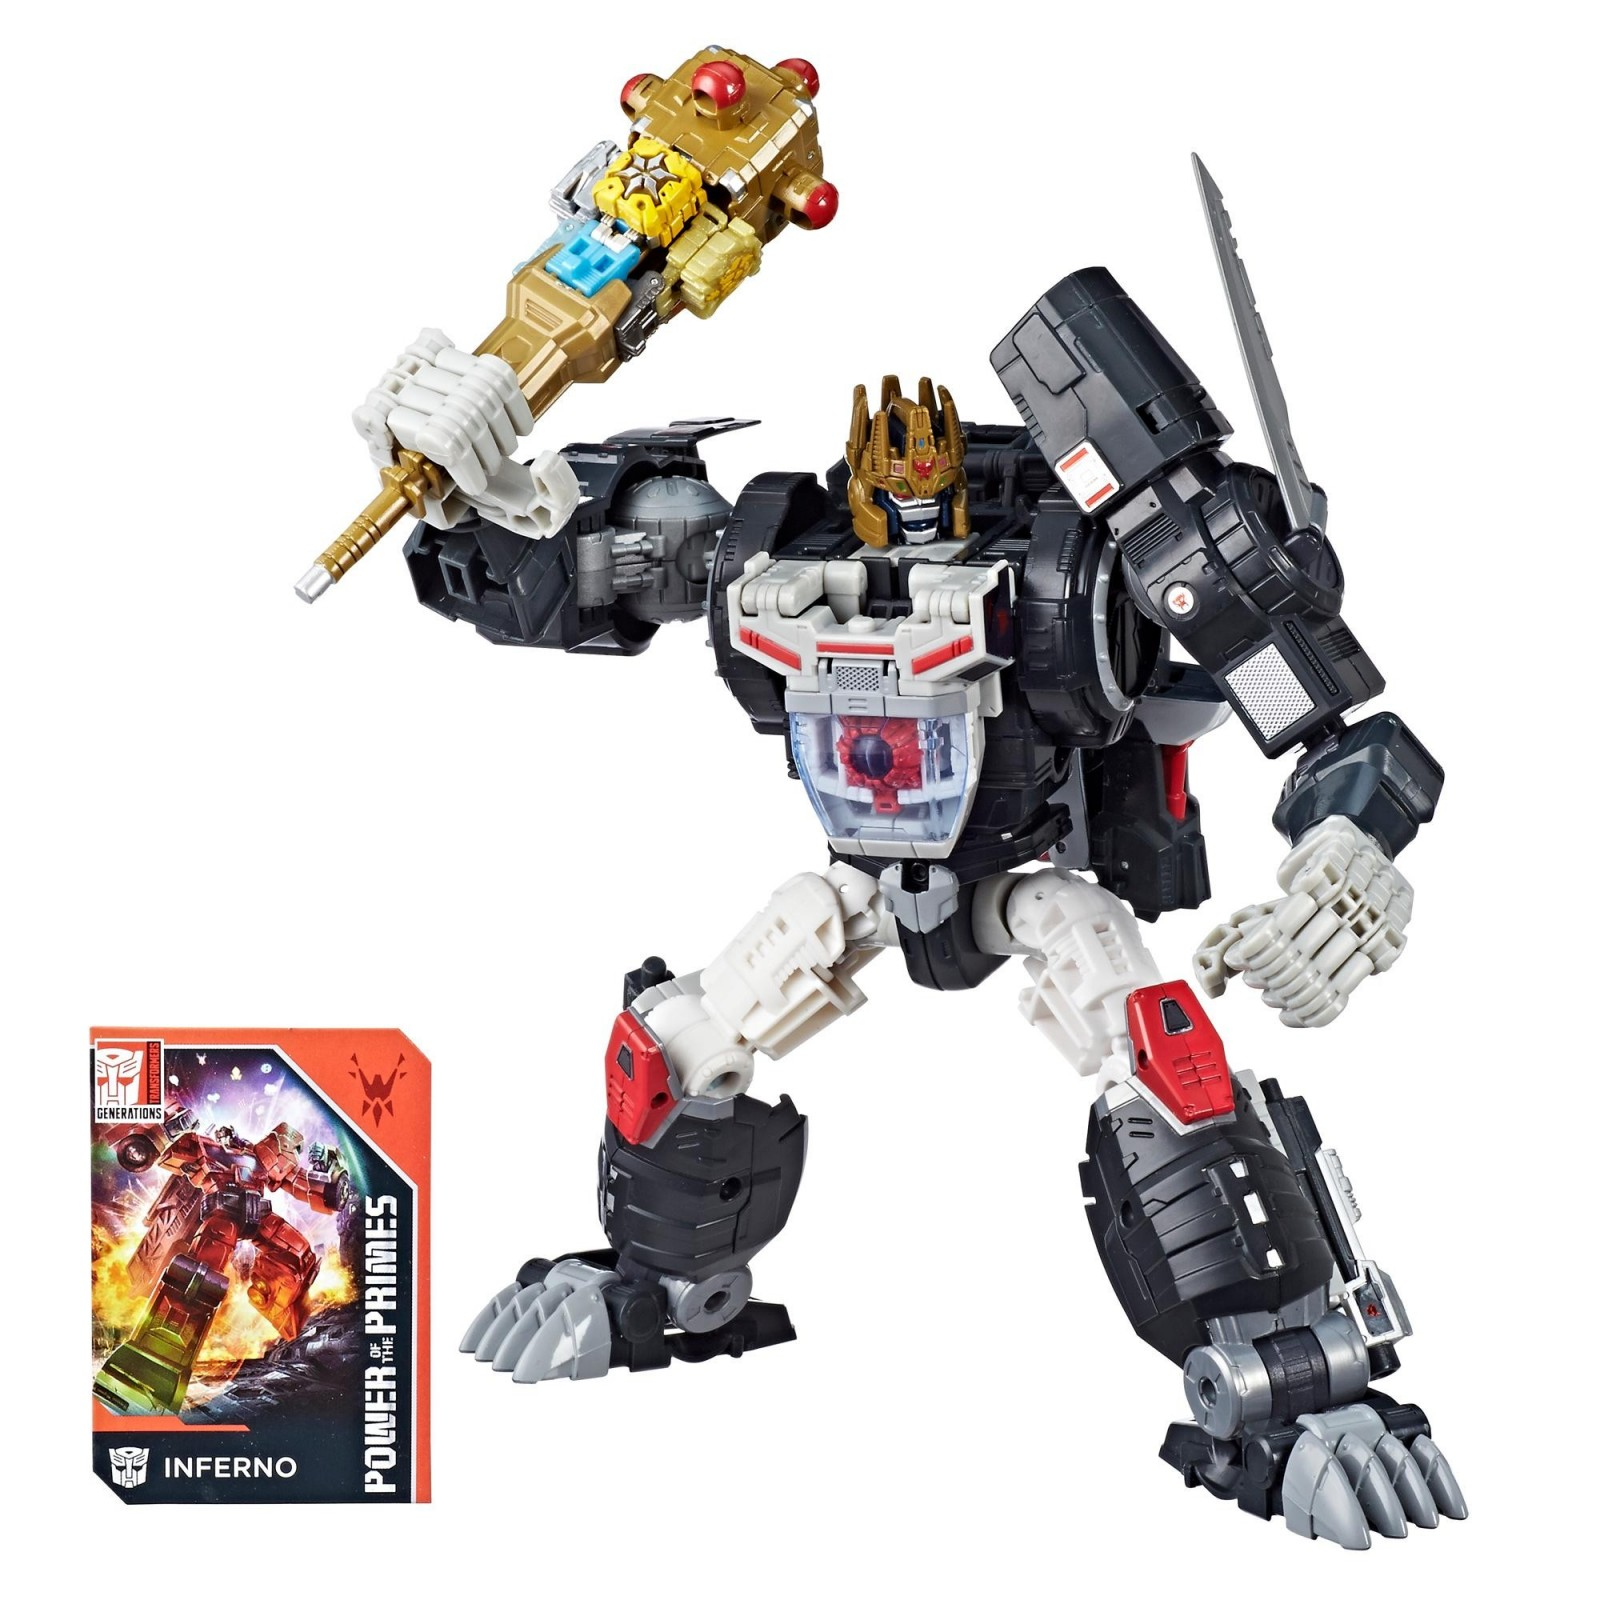 Transformers News: Price and Order Date Revealed for Transformers Power of the Primes Throne of the Primes